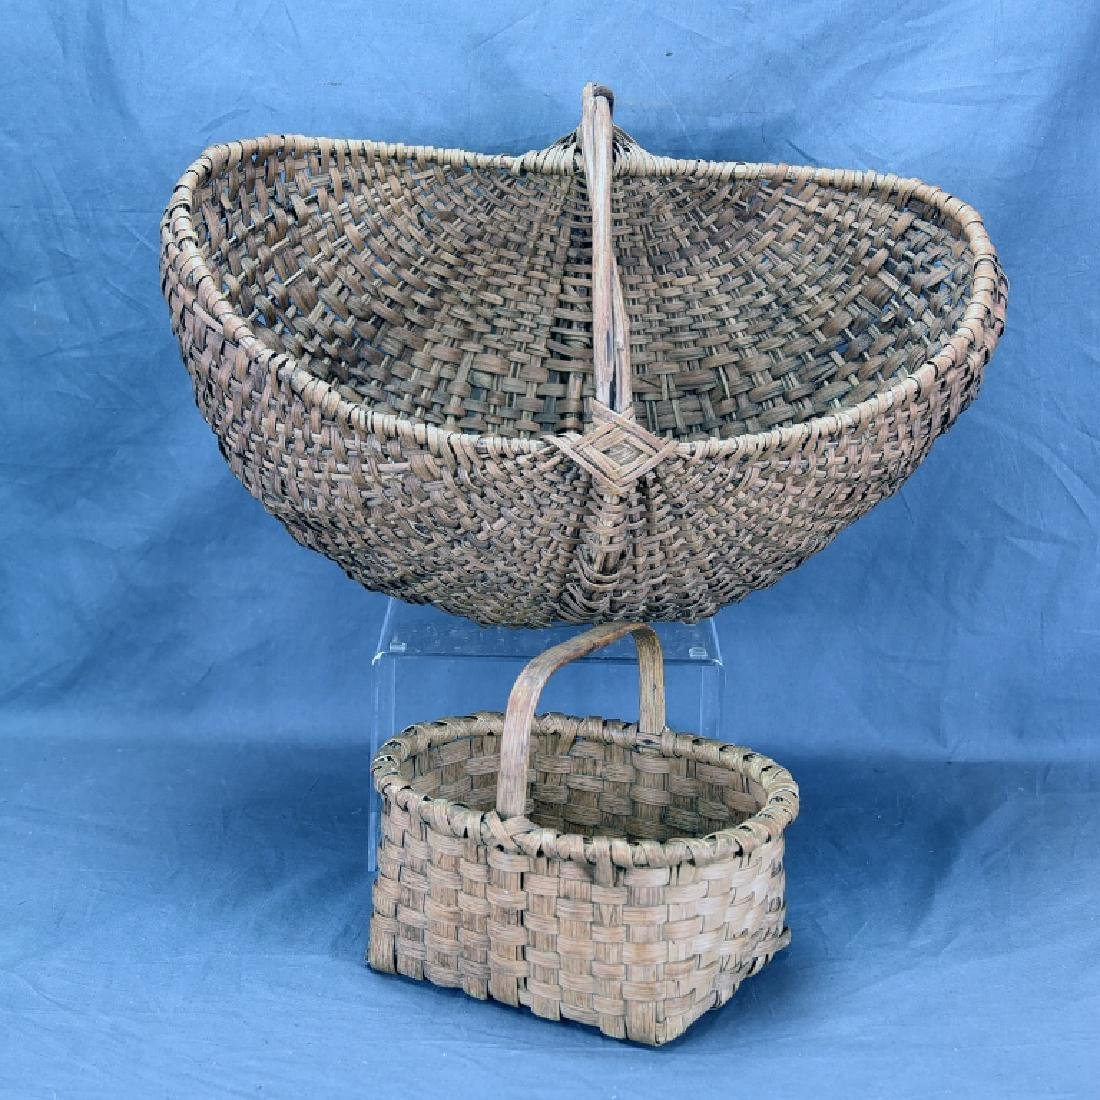 2 Split Ash Baskets